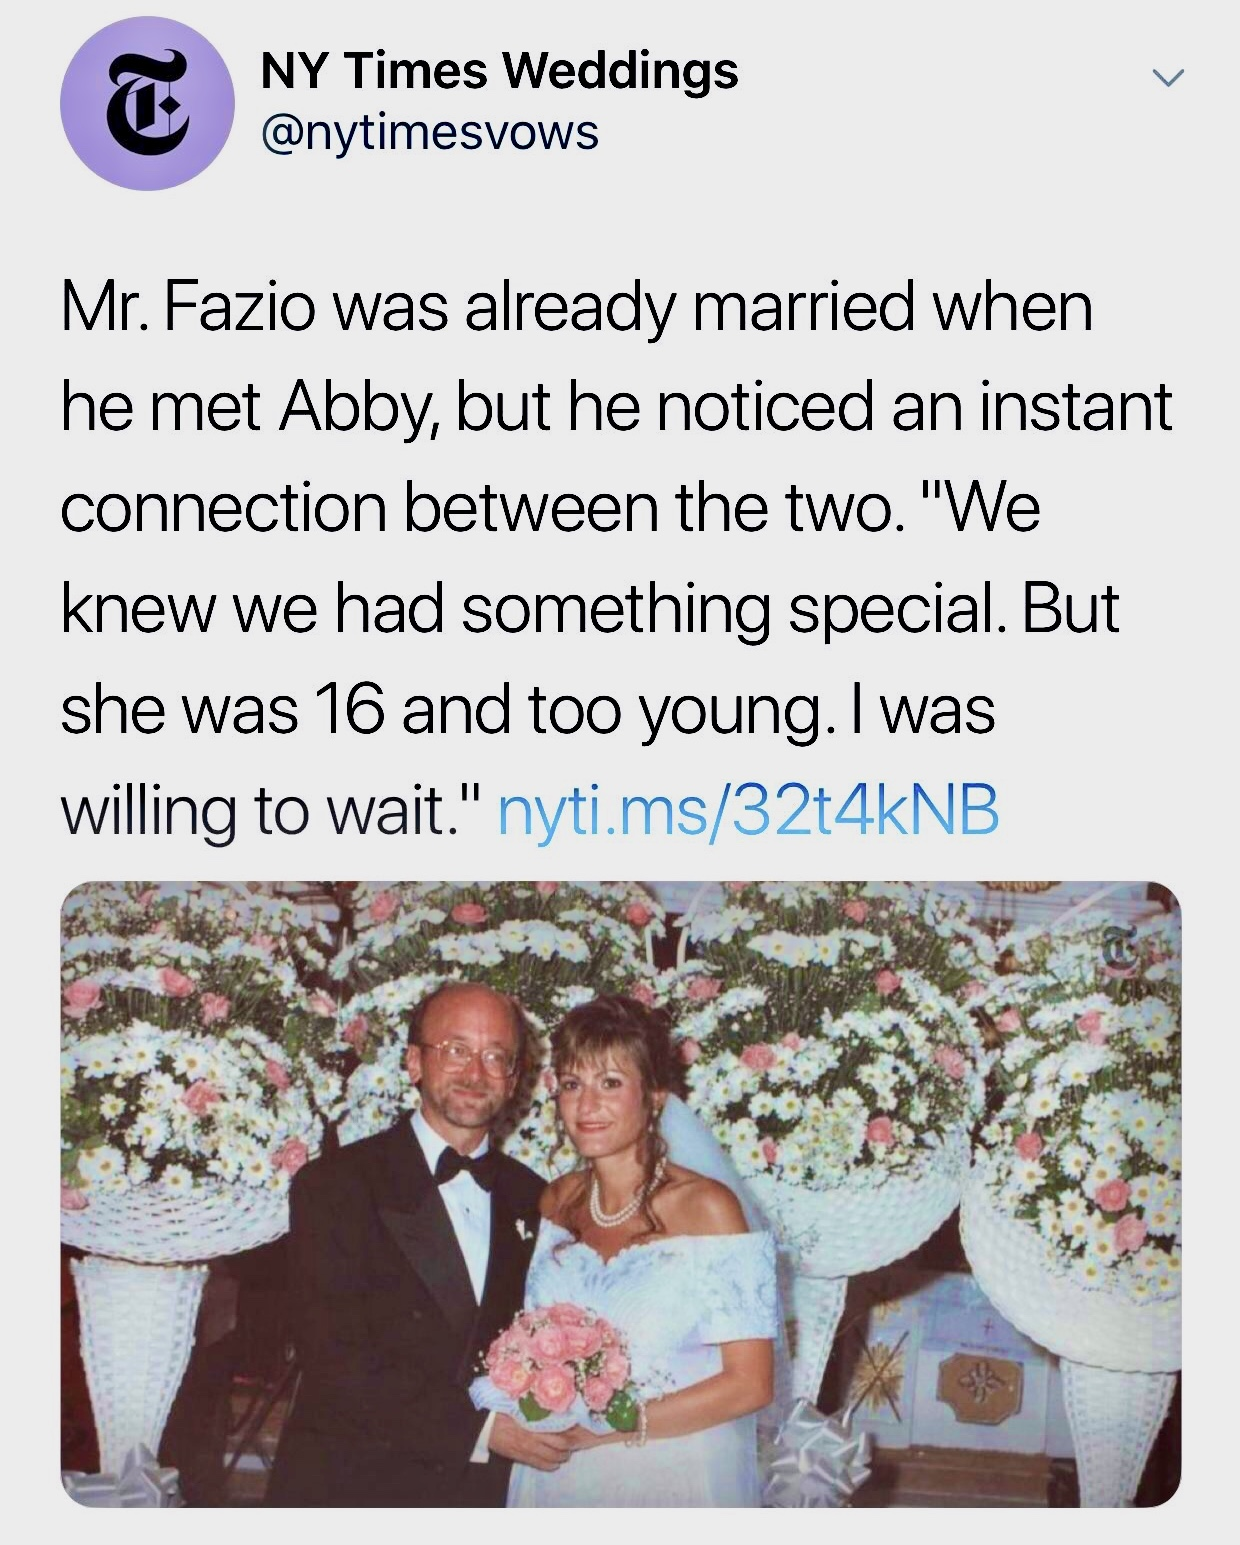 """The New York Times deleted this tweet, which said there was """"an instant connection"""" between a 16-year-old girl and an older married man. (Screenshot/Twitter/New York Times Weddings)"""